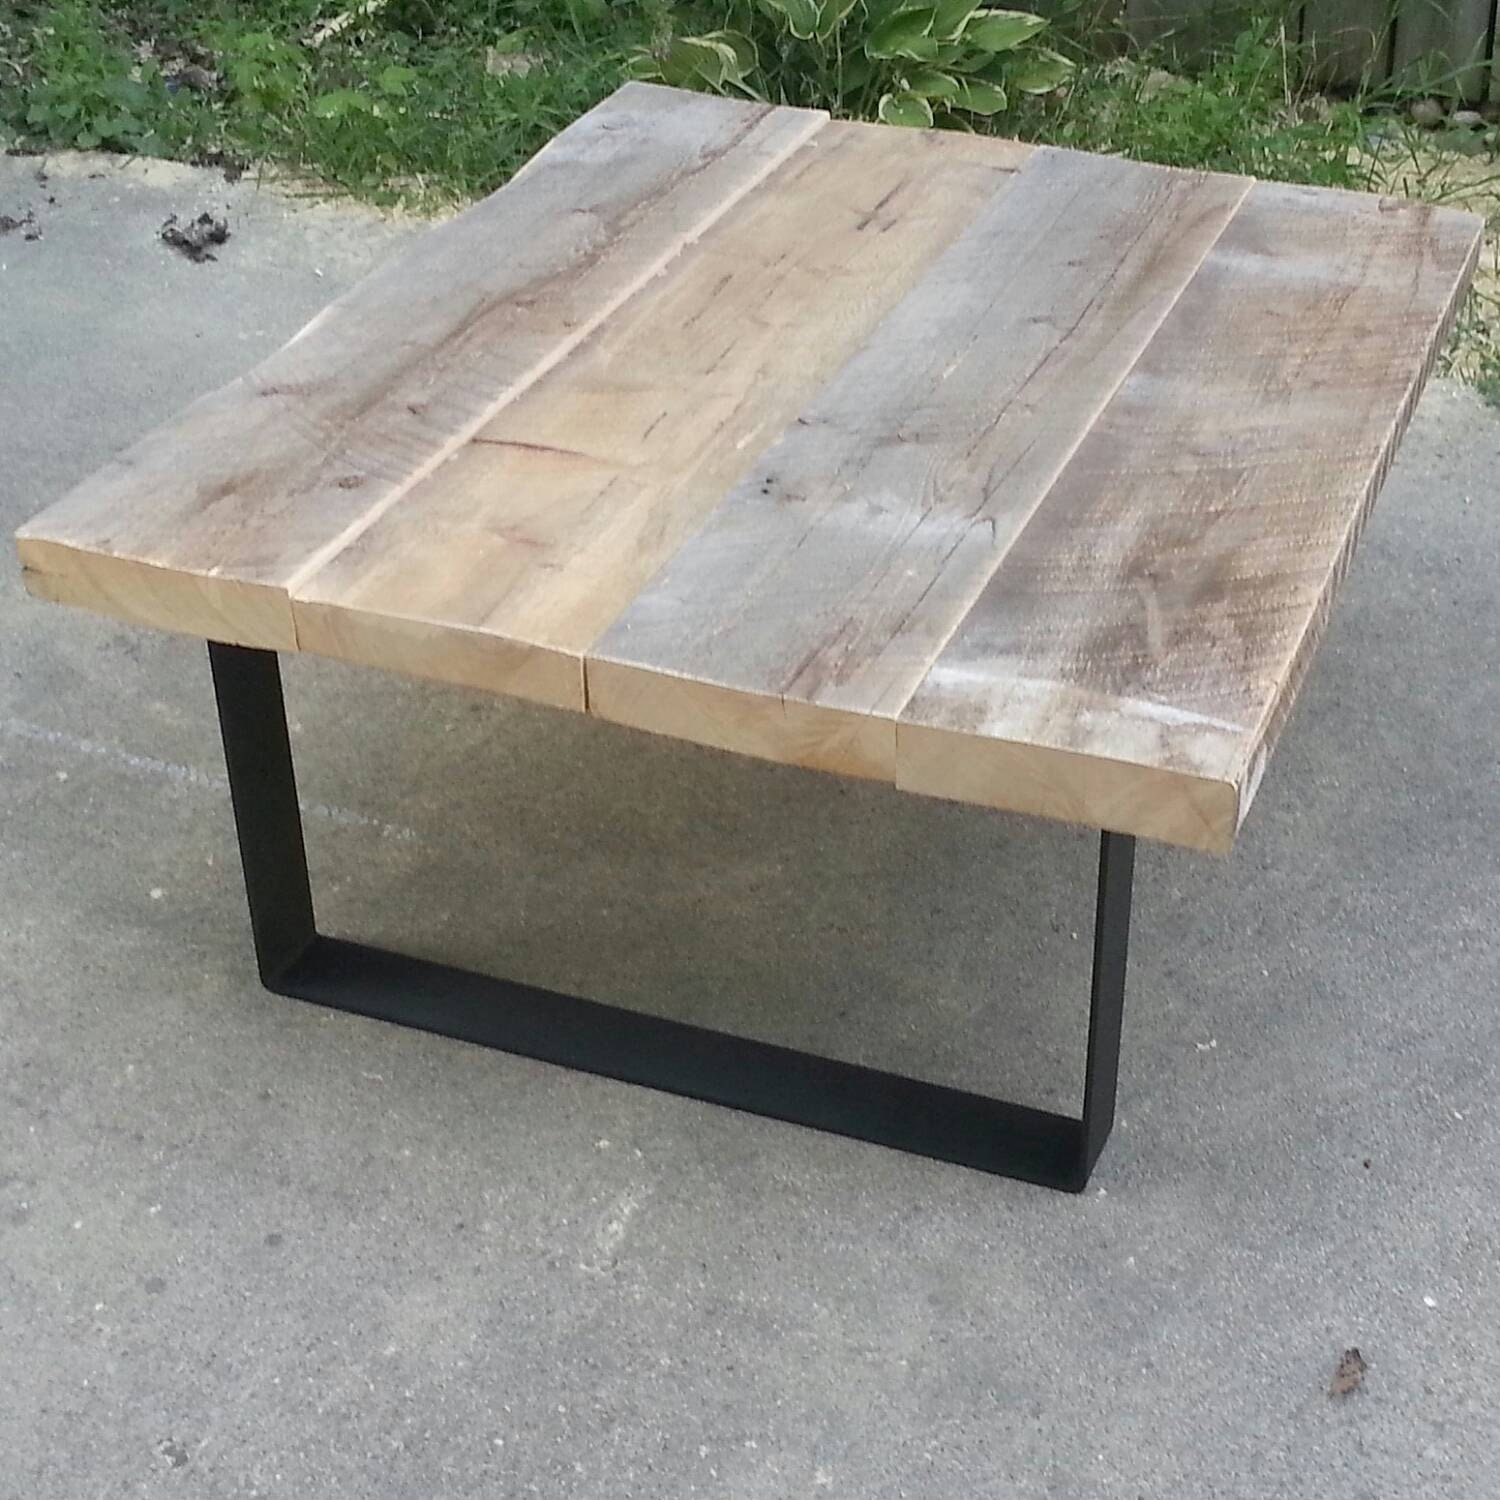 Reclaimed Wood Coffee Table With Steel Legs By TablesForaSteel